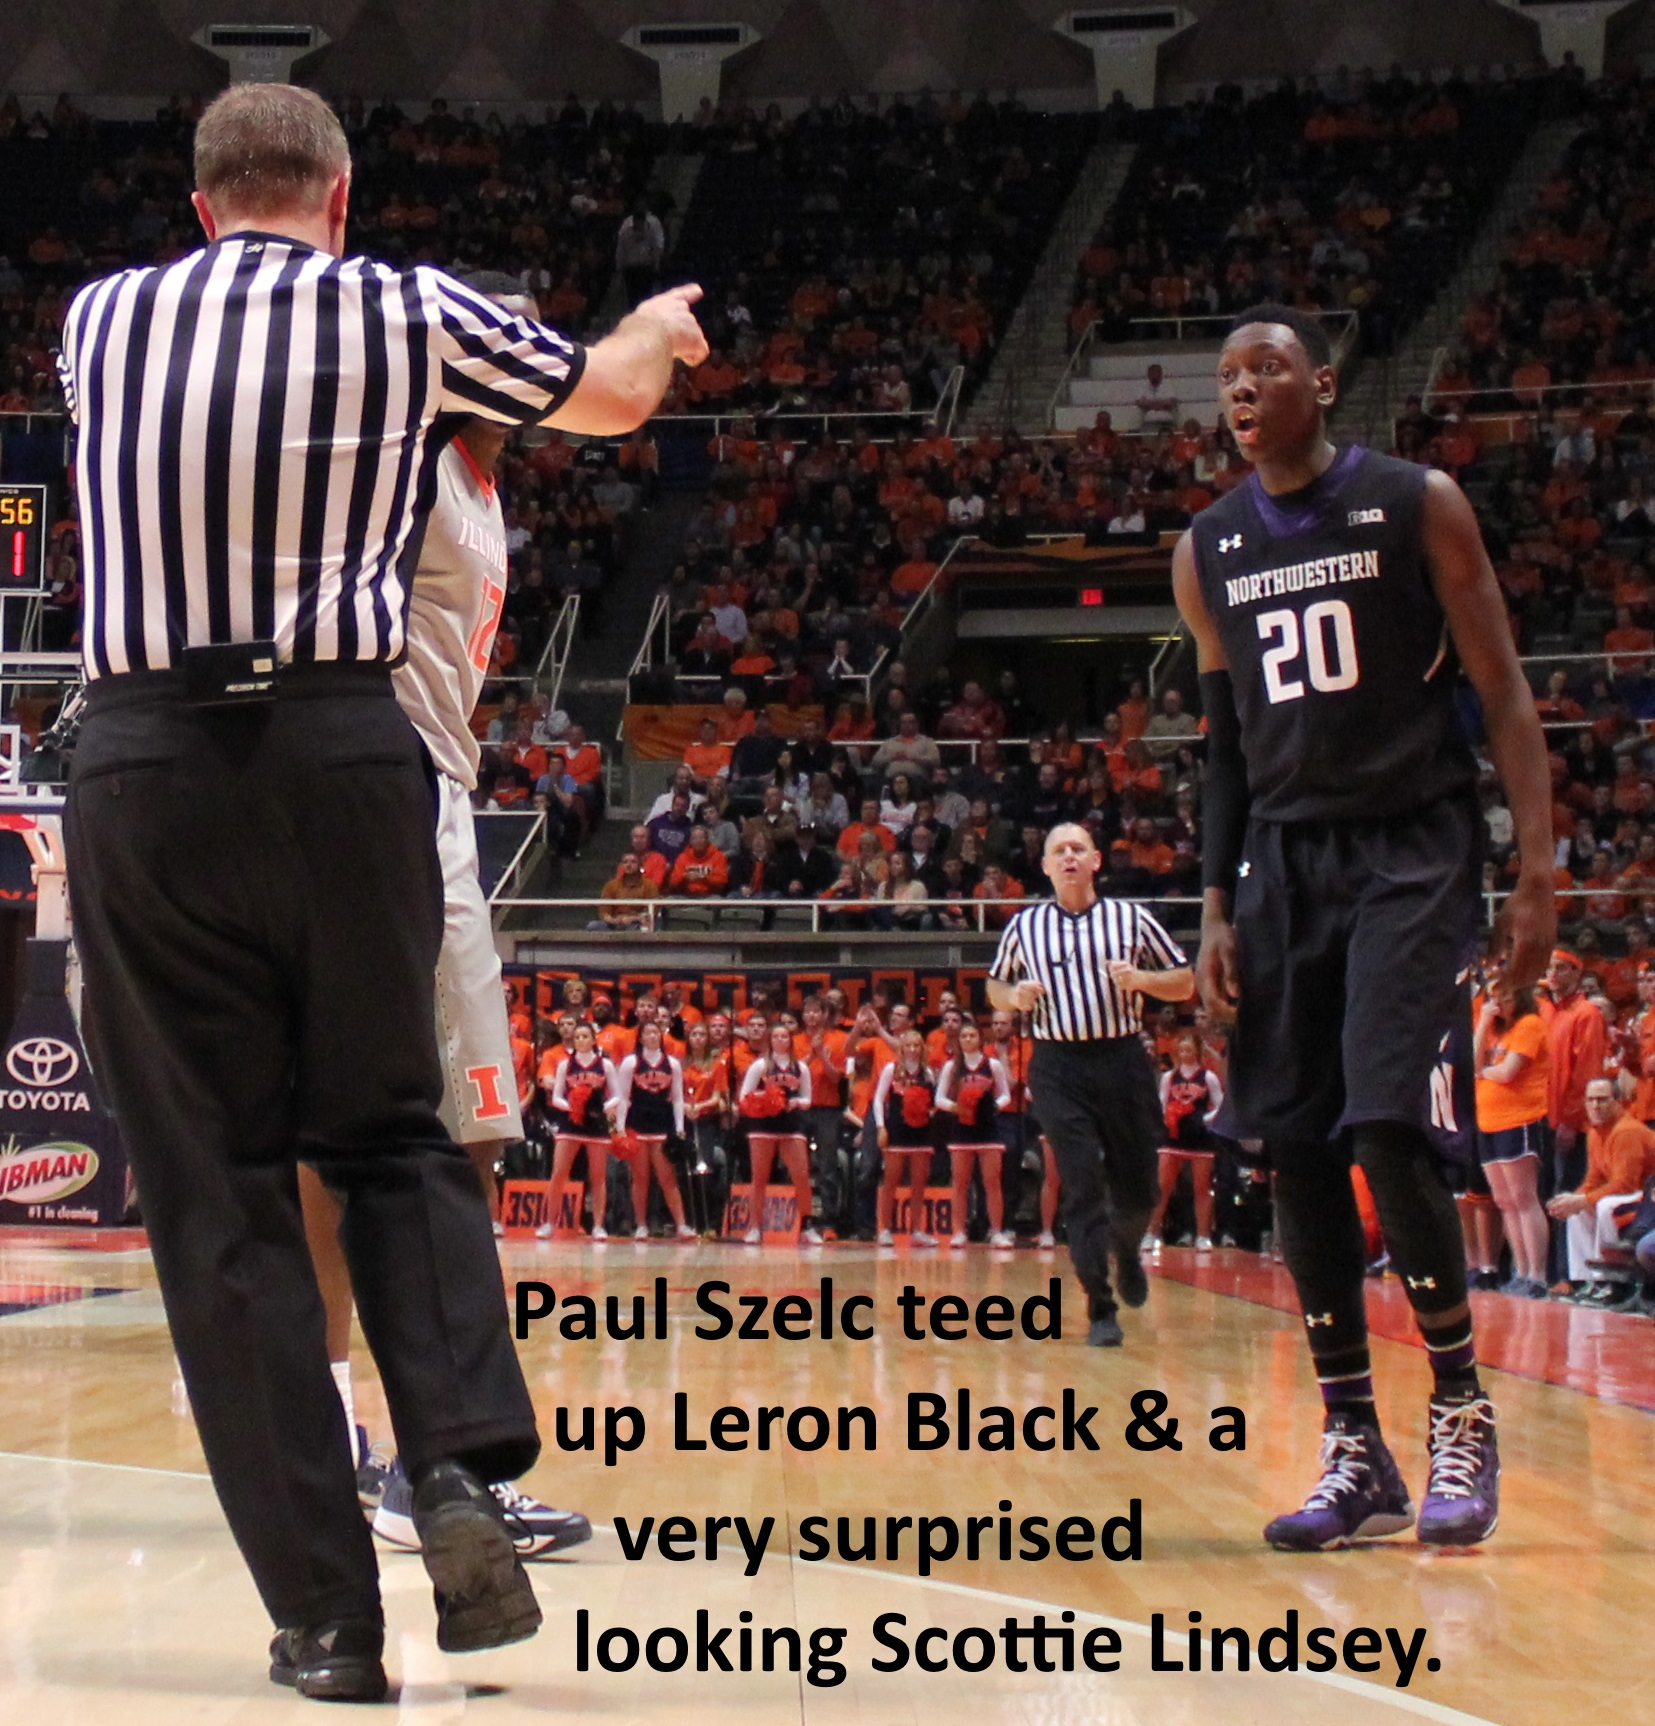 Paul Szelc teed up Leron Black and Scottie Lindsey